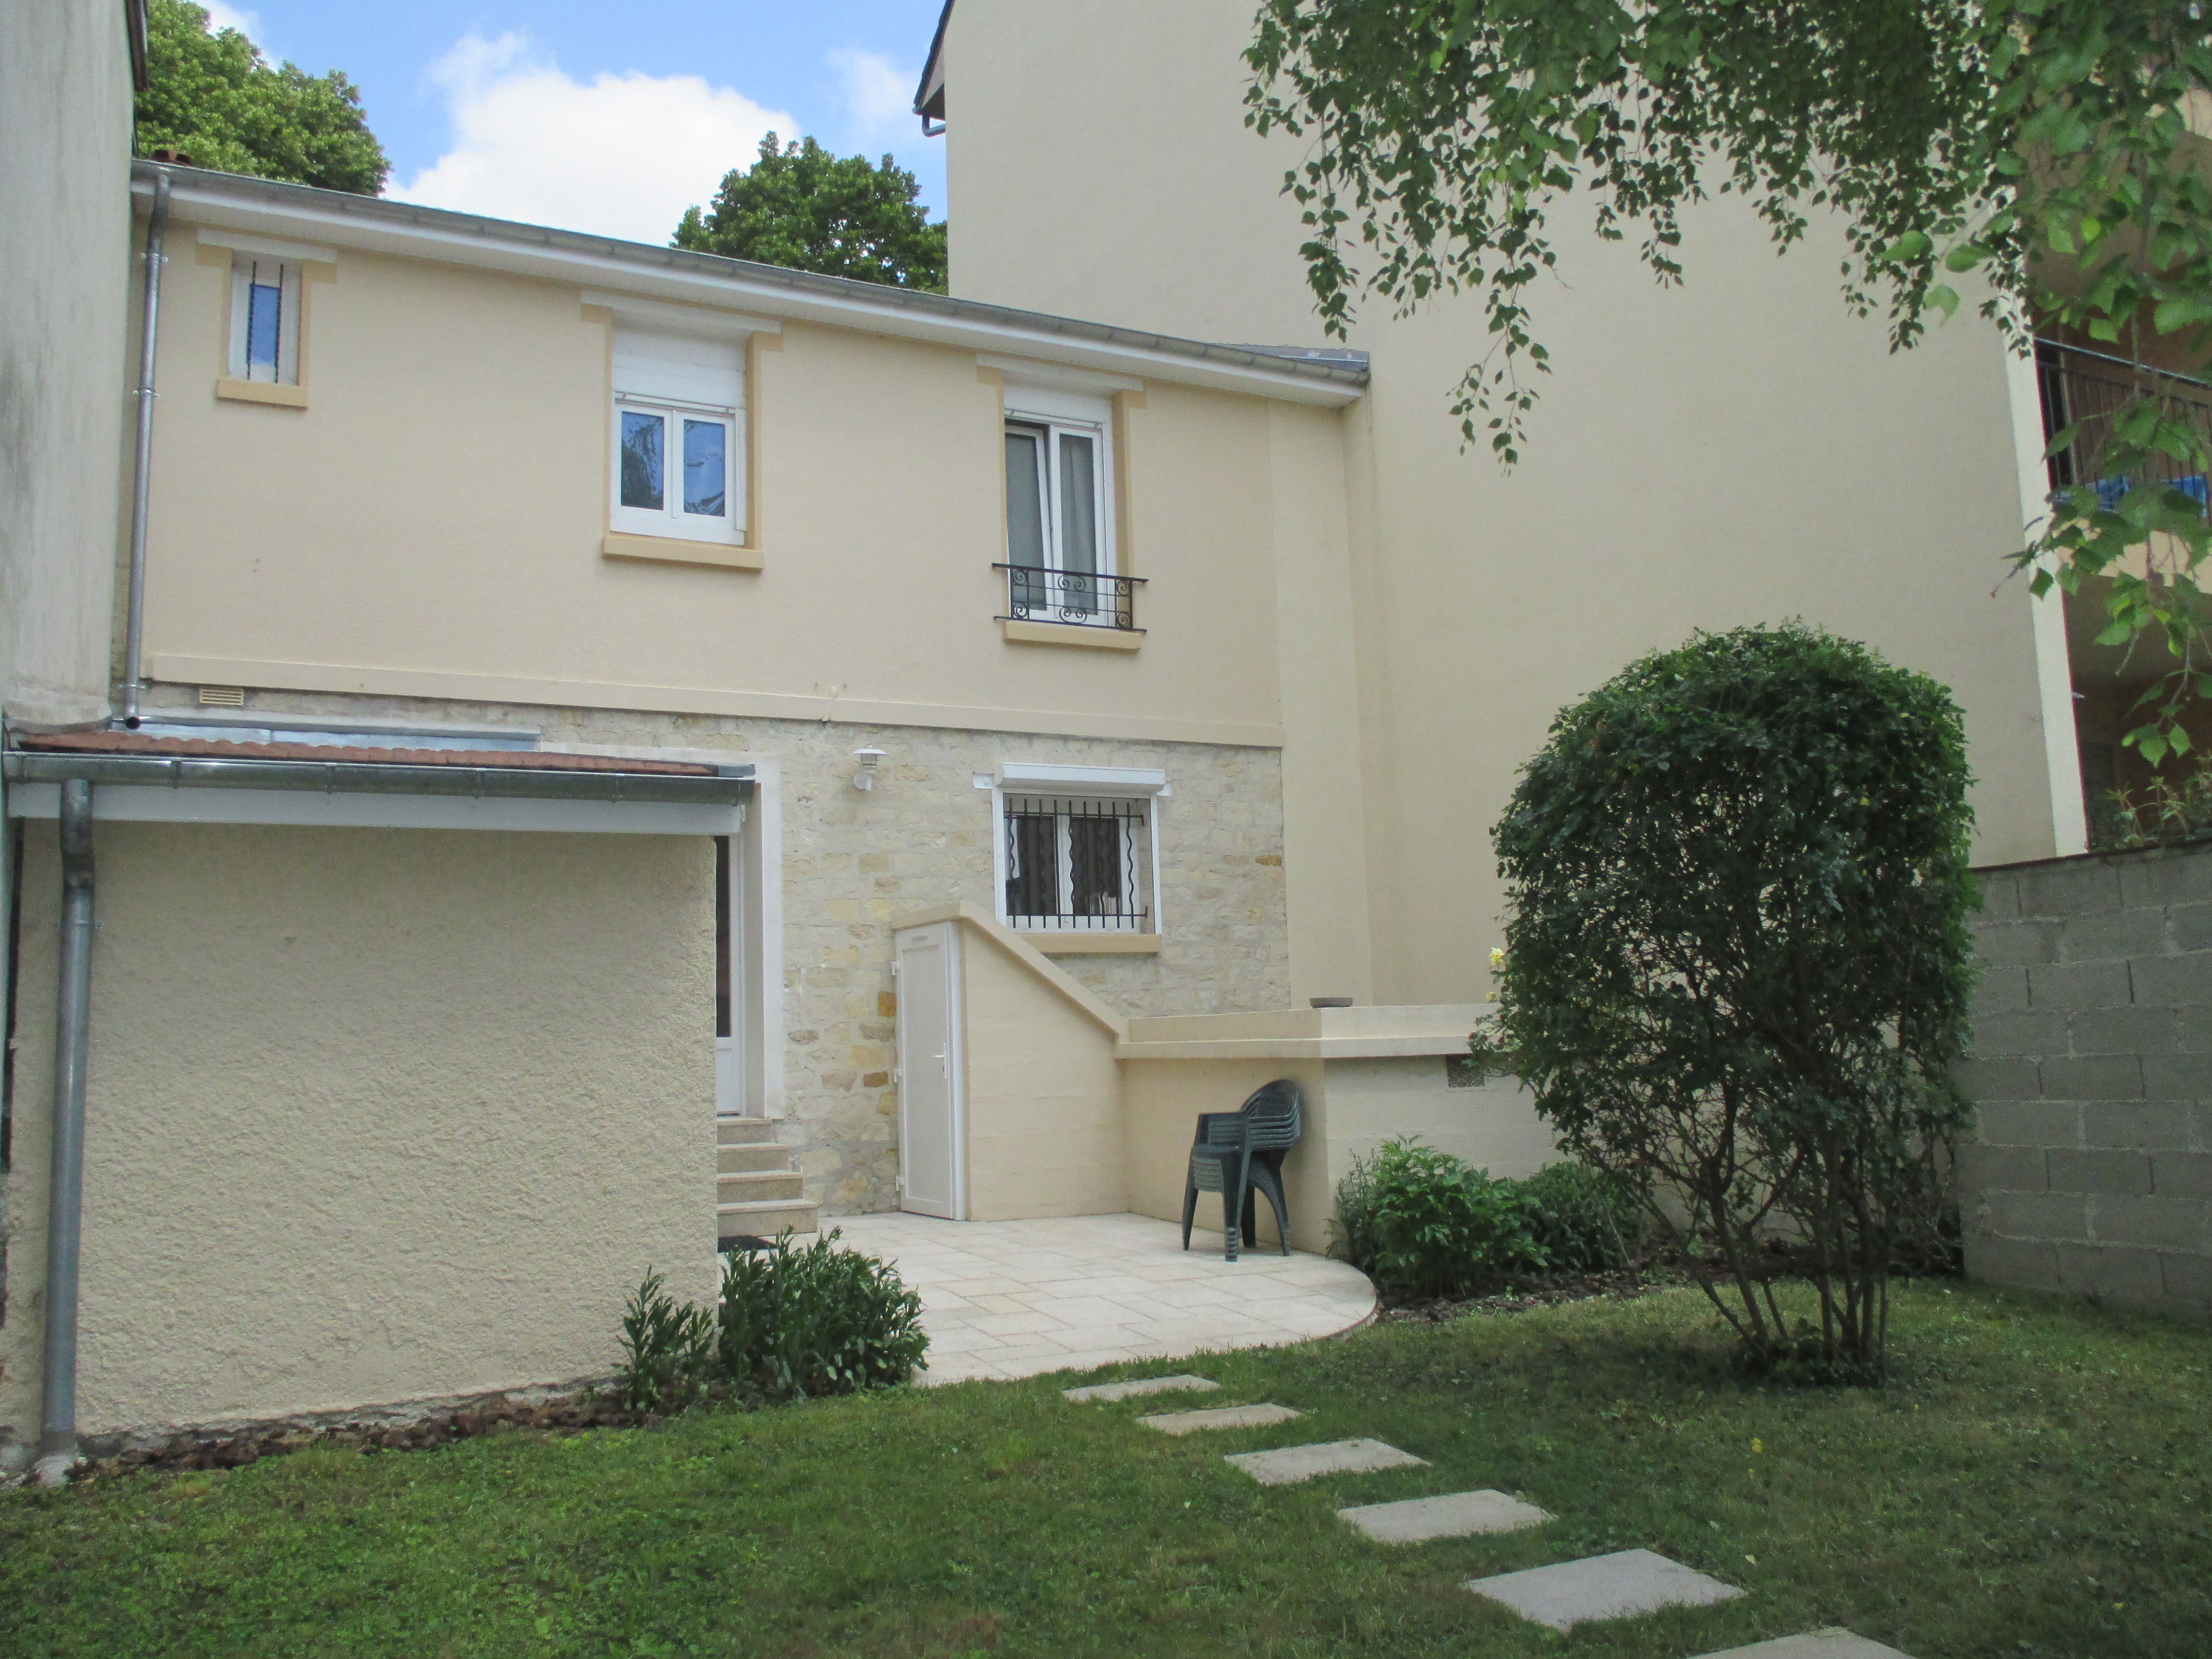 Damonte LOCATION MAISON CHALONS EN CHAMPAGNE CL1623